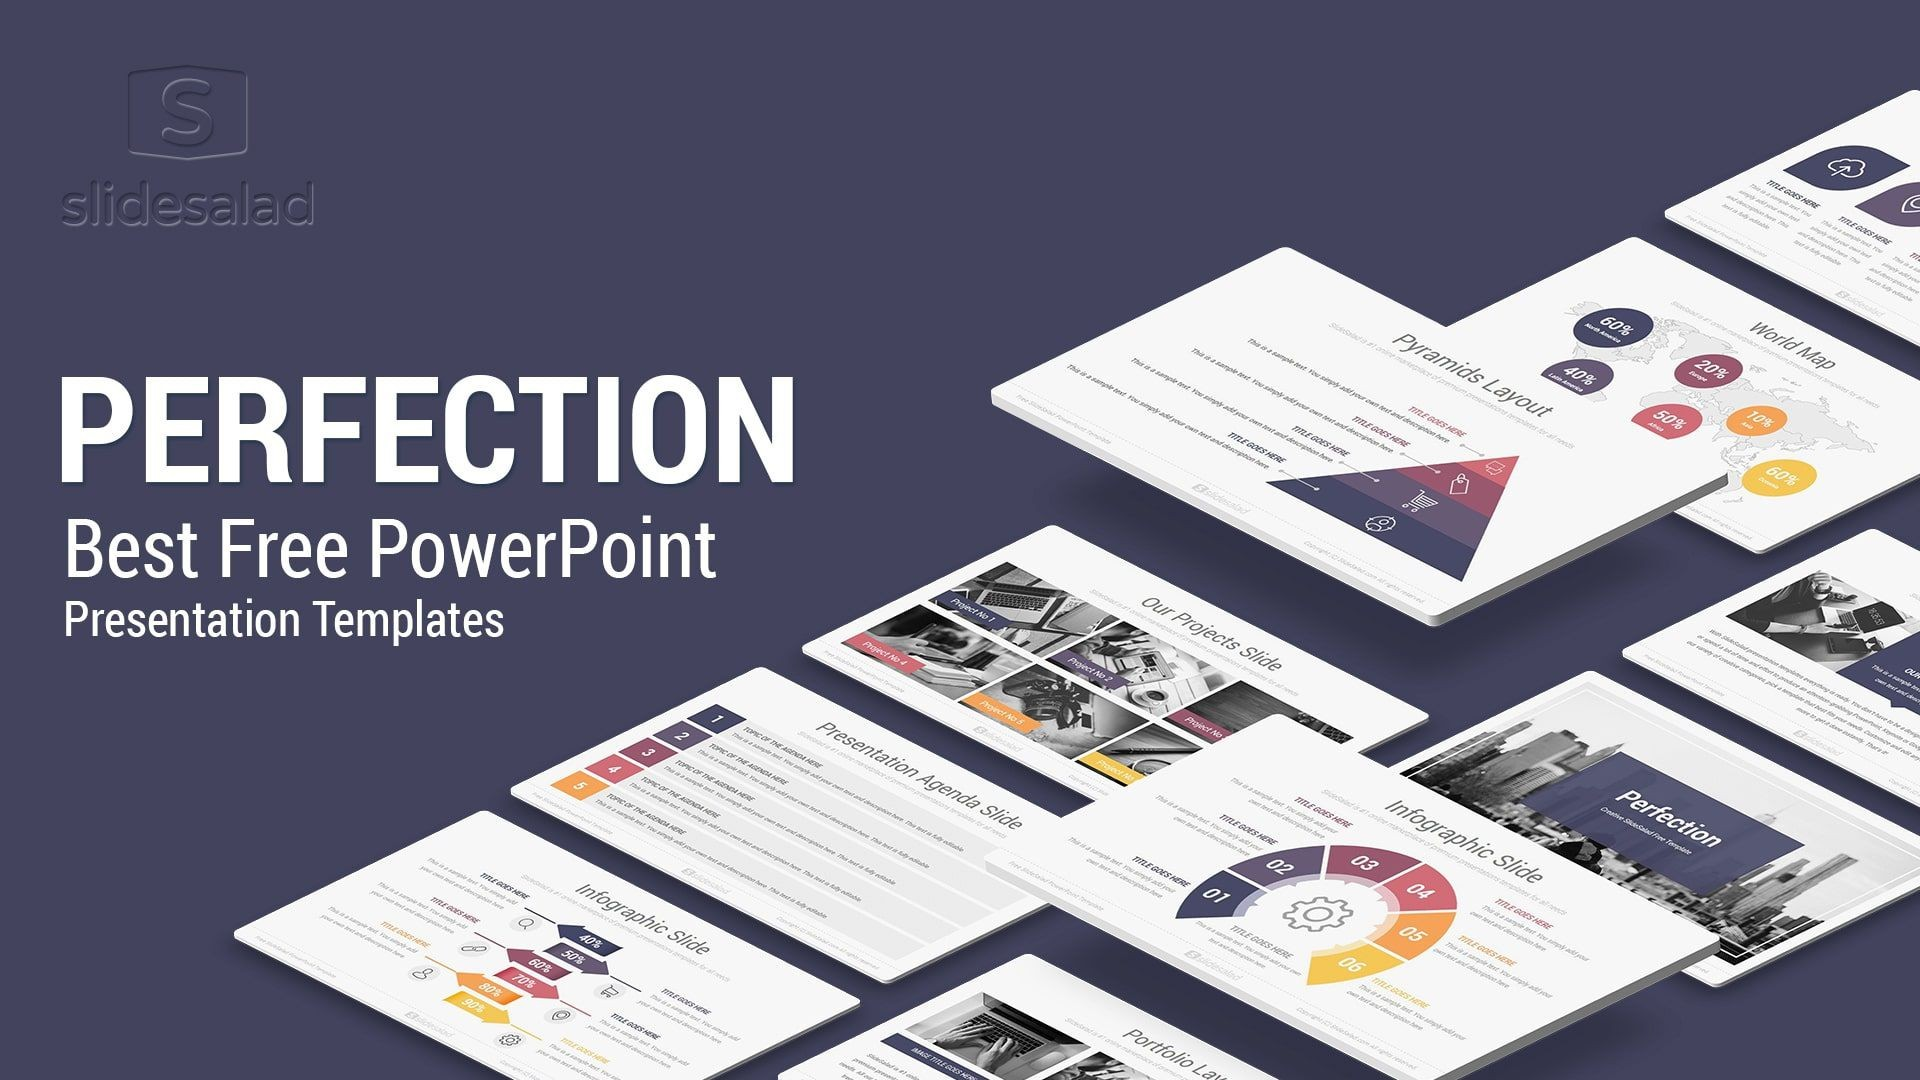 003 Amazing Professional Ppt Template Free Download Highest Clarity  Microsoft 2017 Powerpoint Presentation 20191920